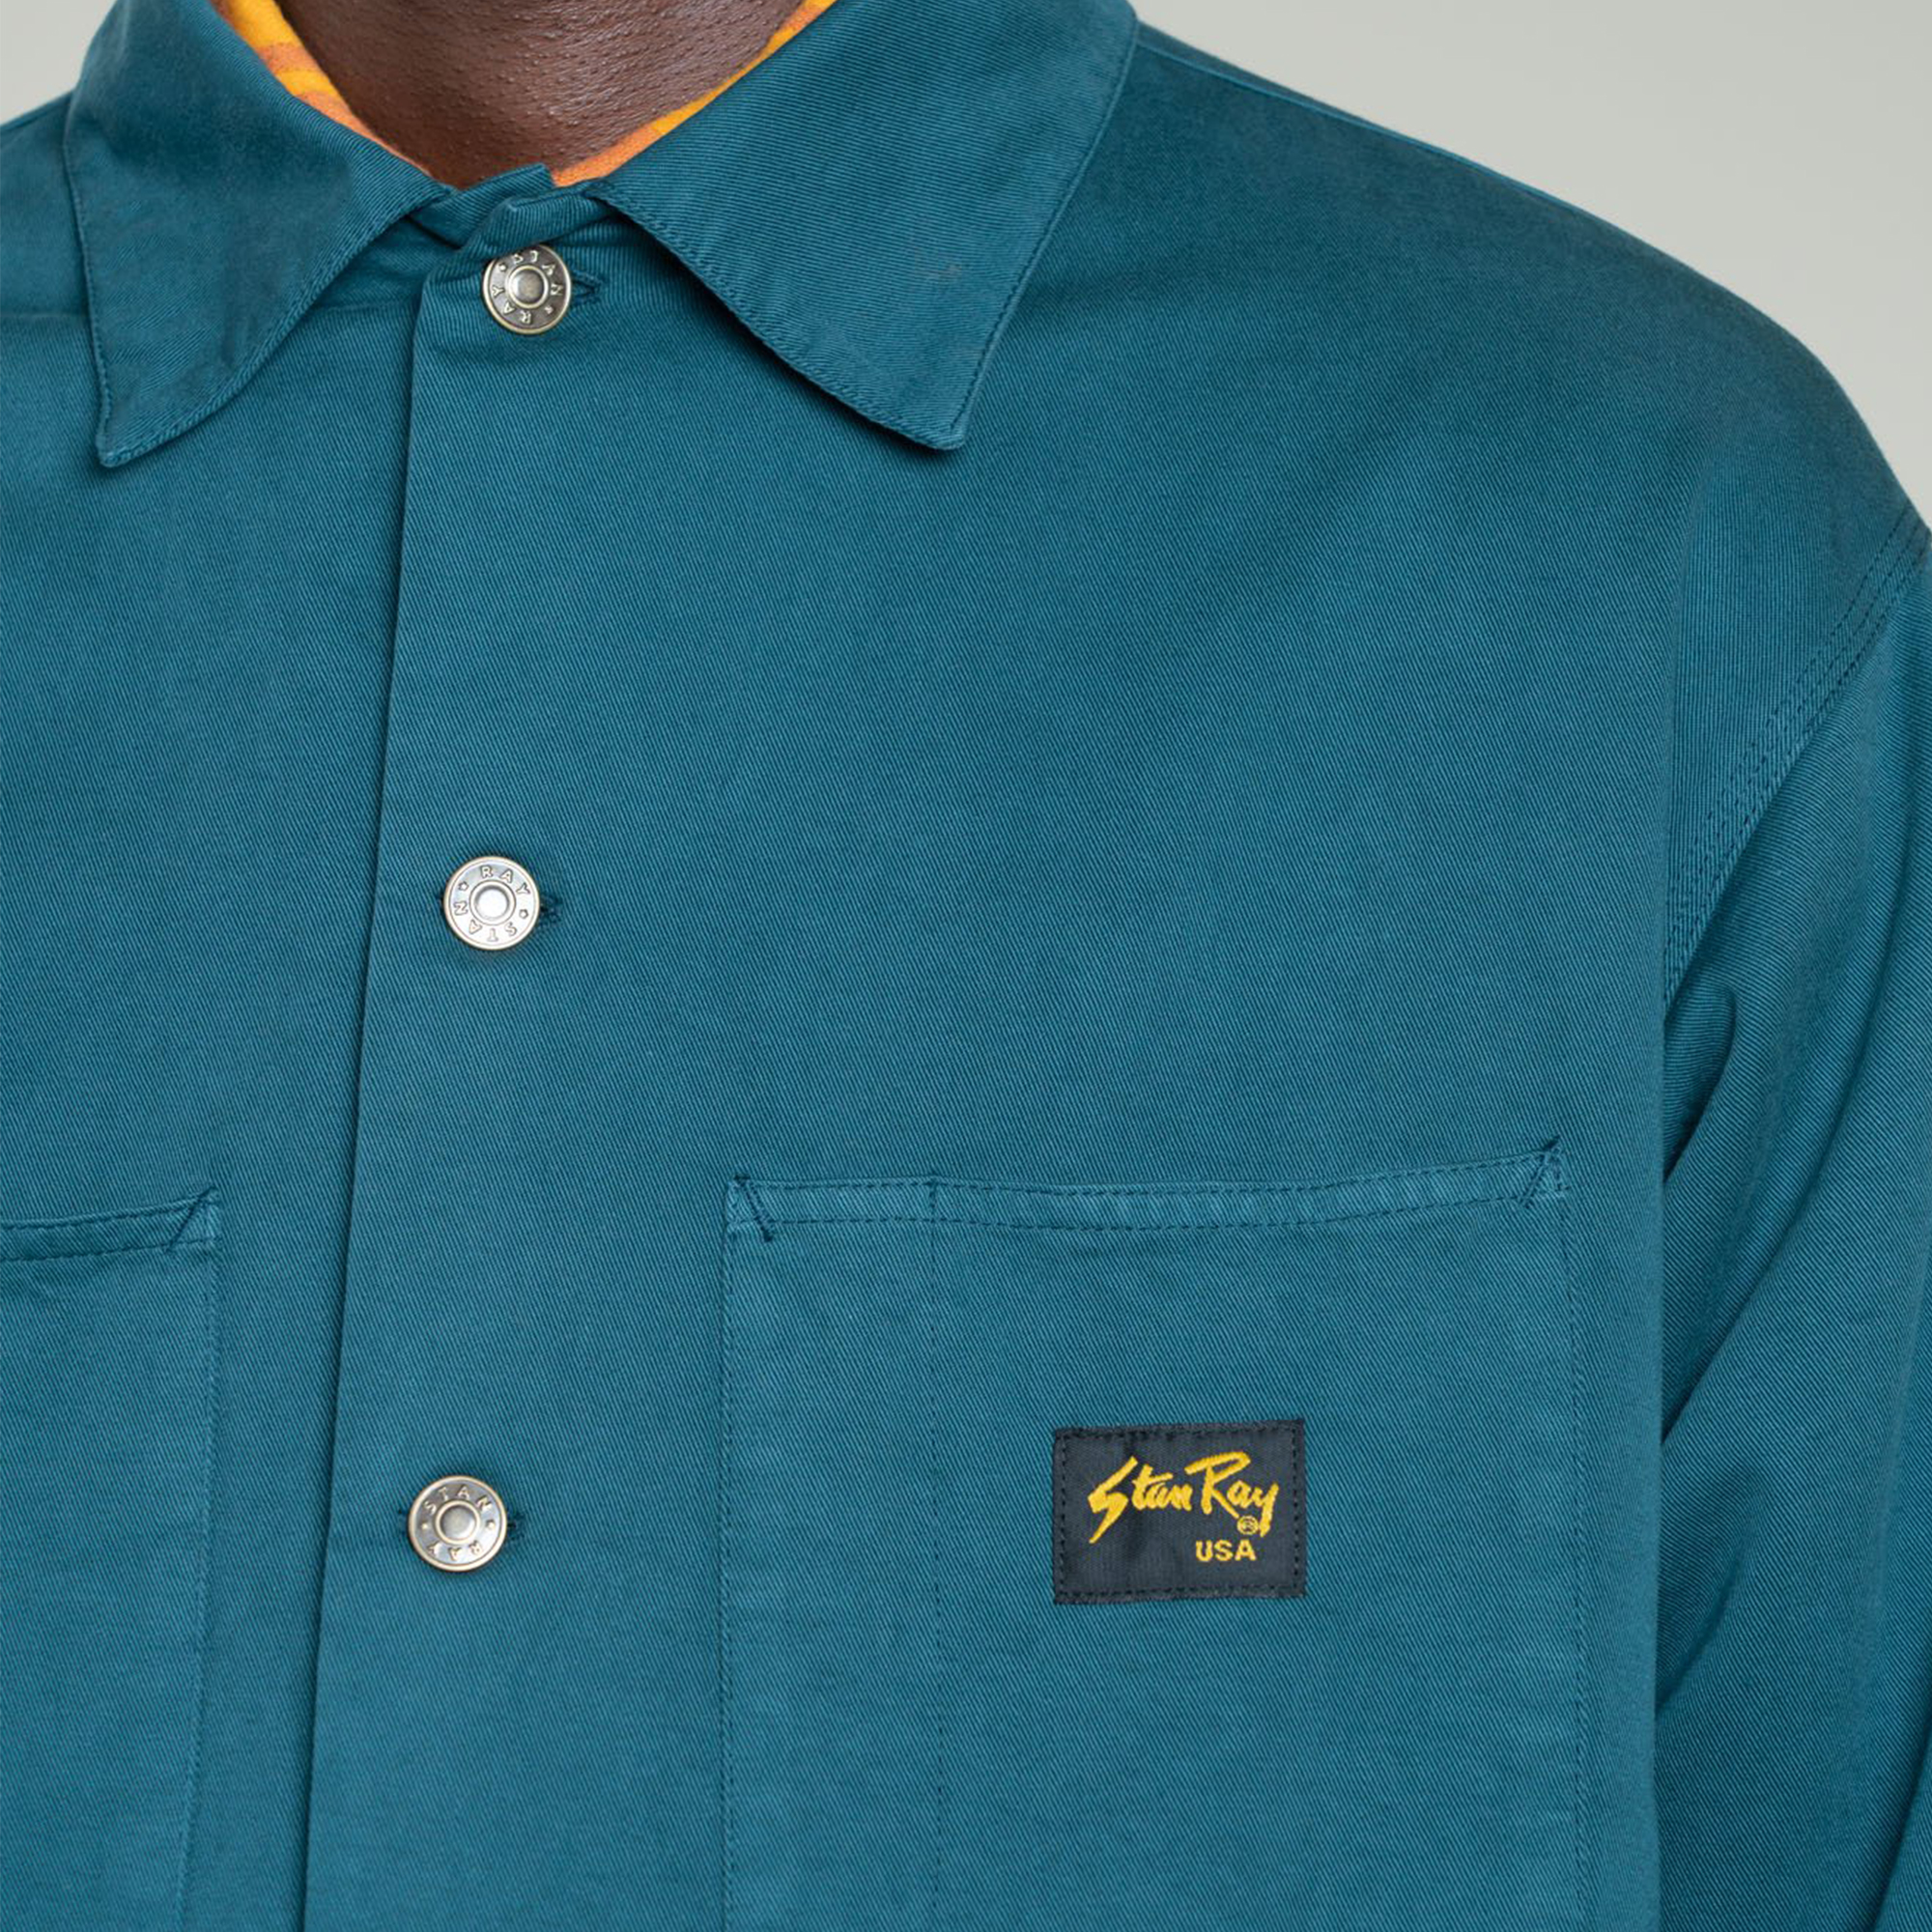 Stan Ray- Lined shop jacket- ON SALE